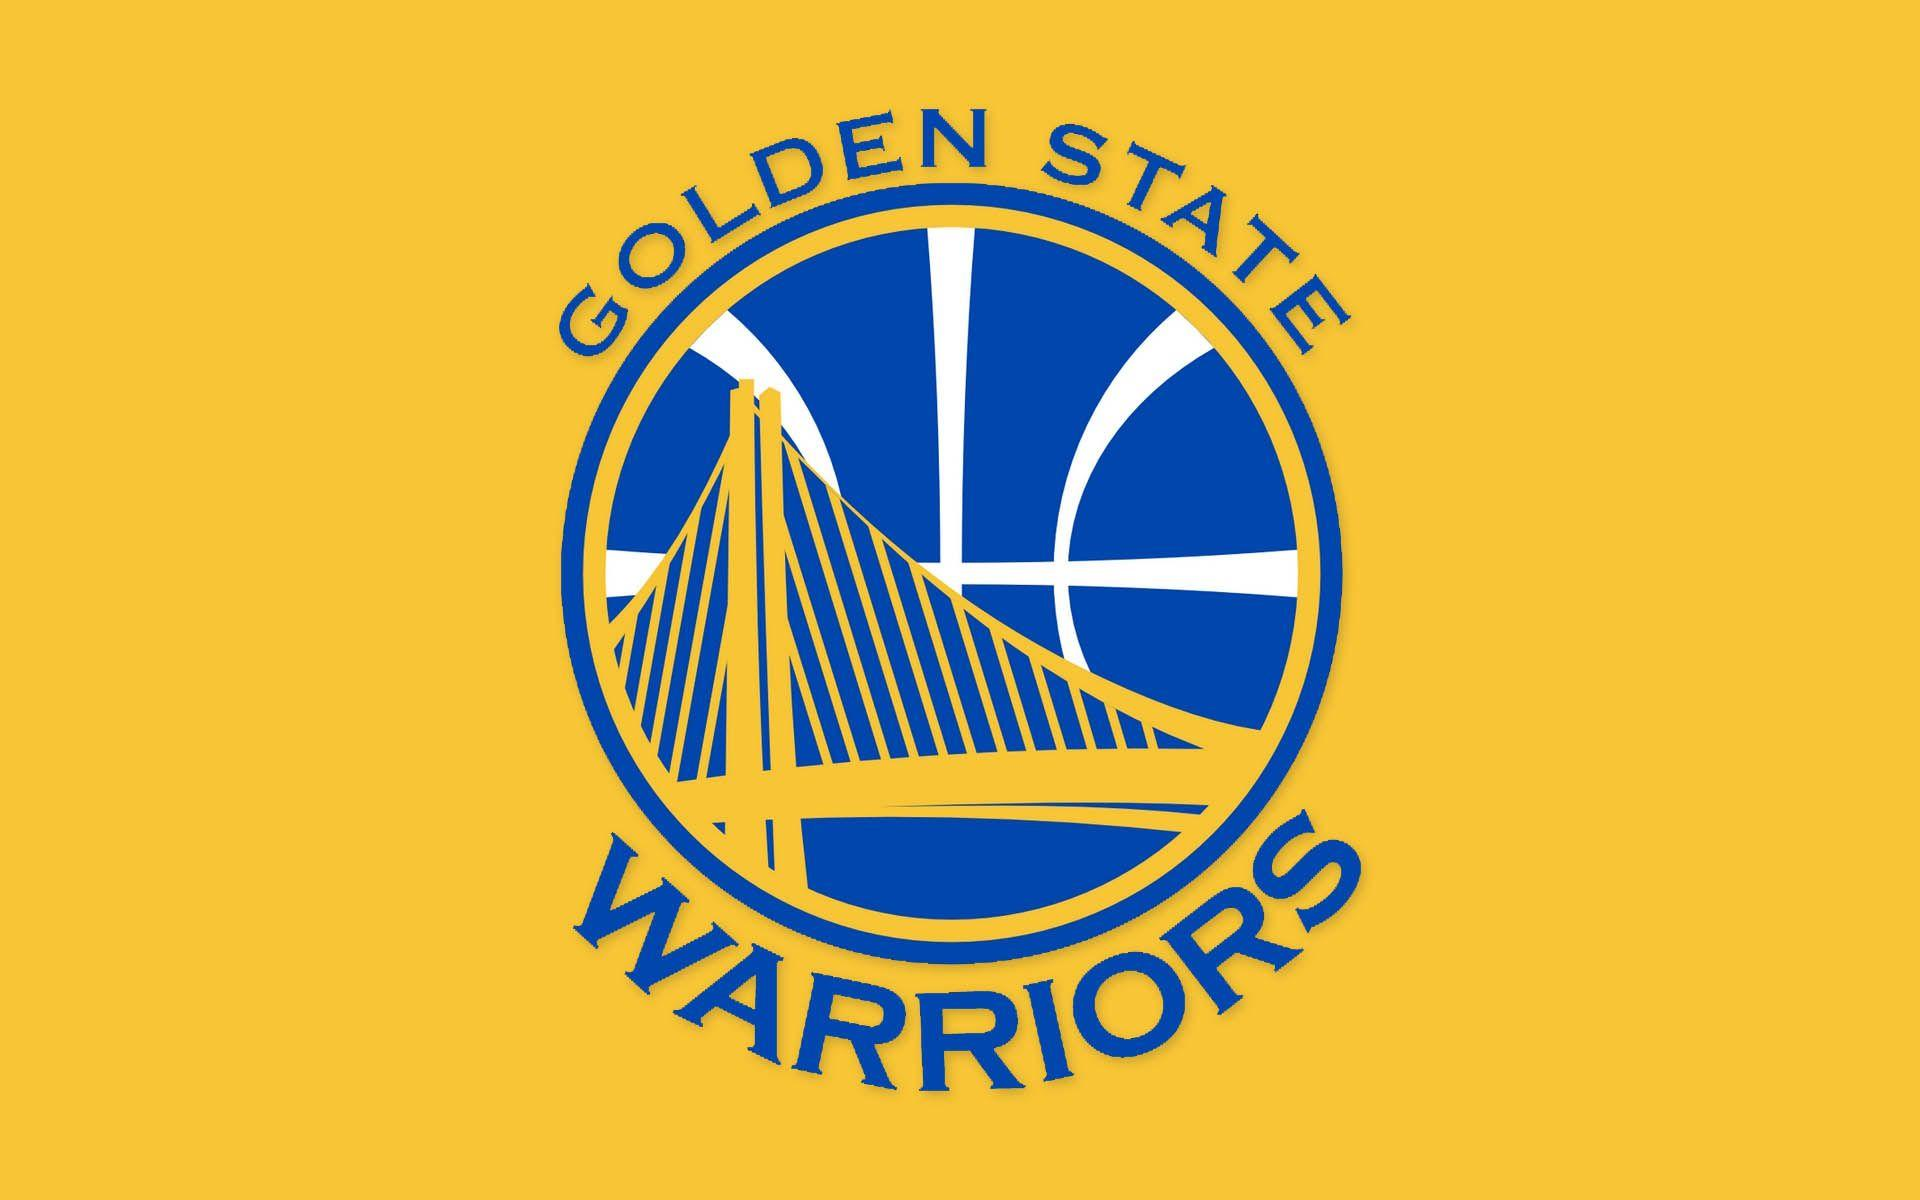 6 HD Golden State Warriors Wallpapers